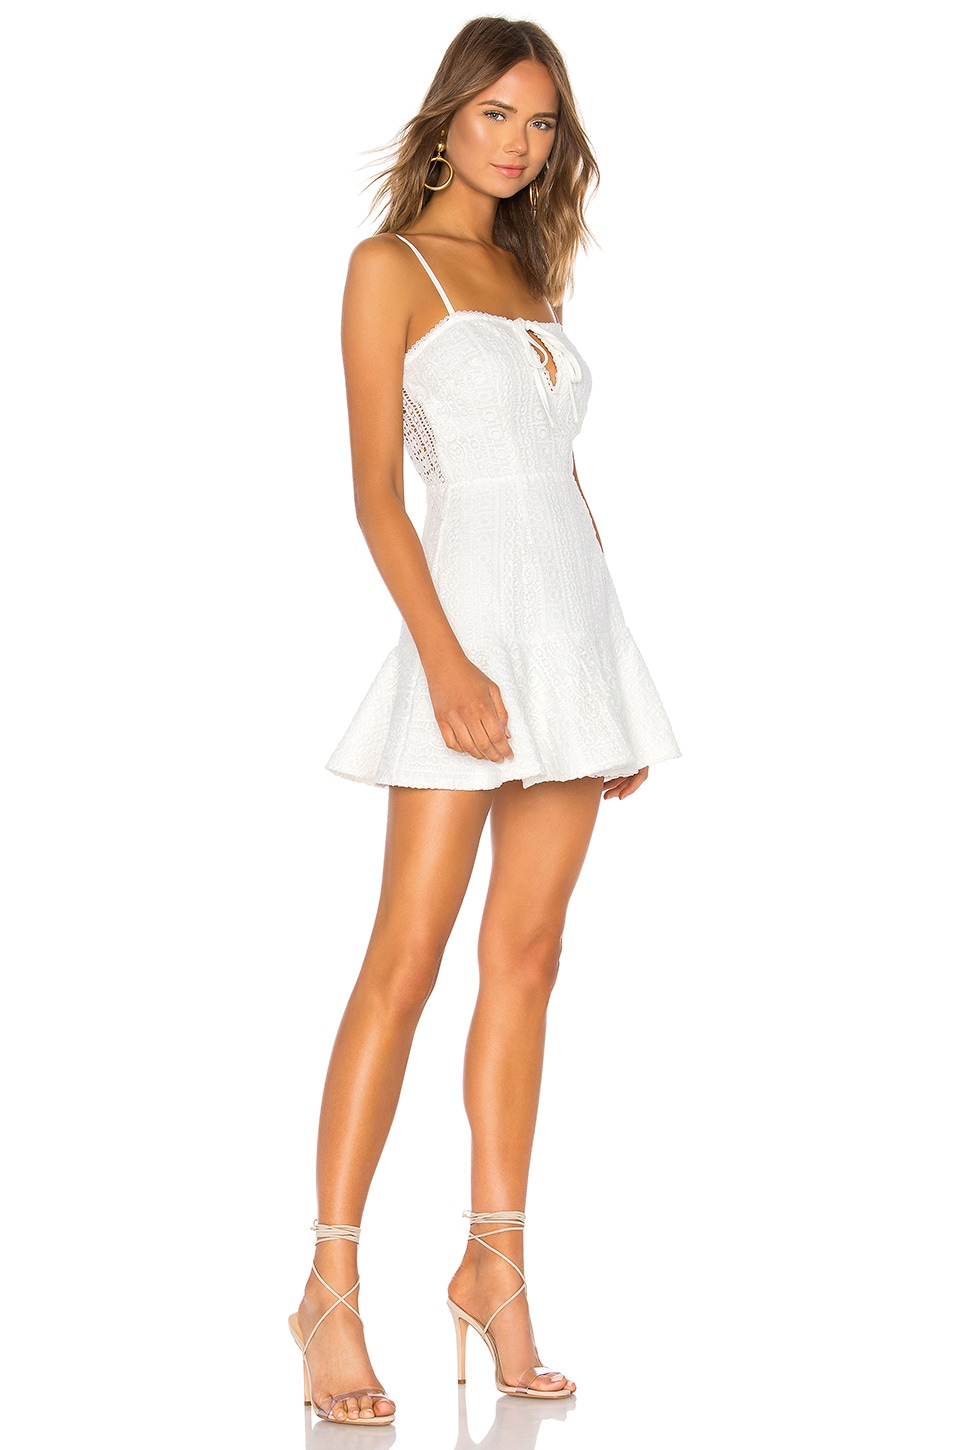 Del Crochet Keyhole Dress             superdown                                                                                                       CA$ 99.24 16